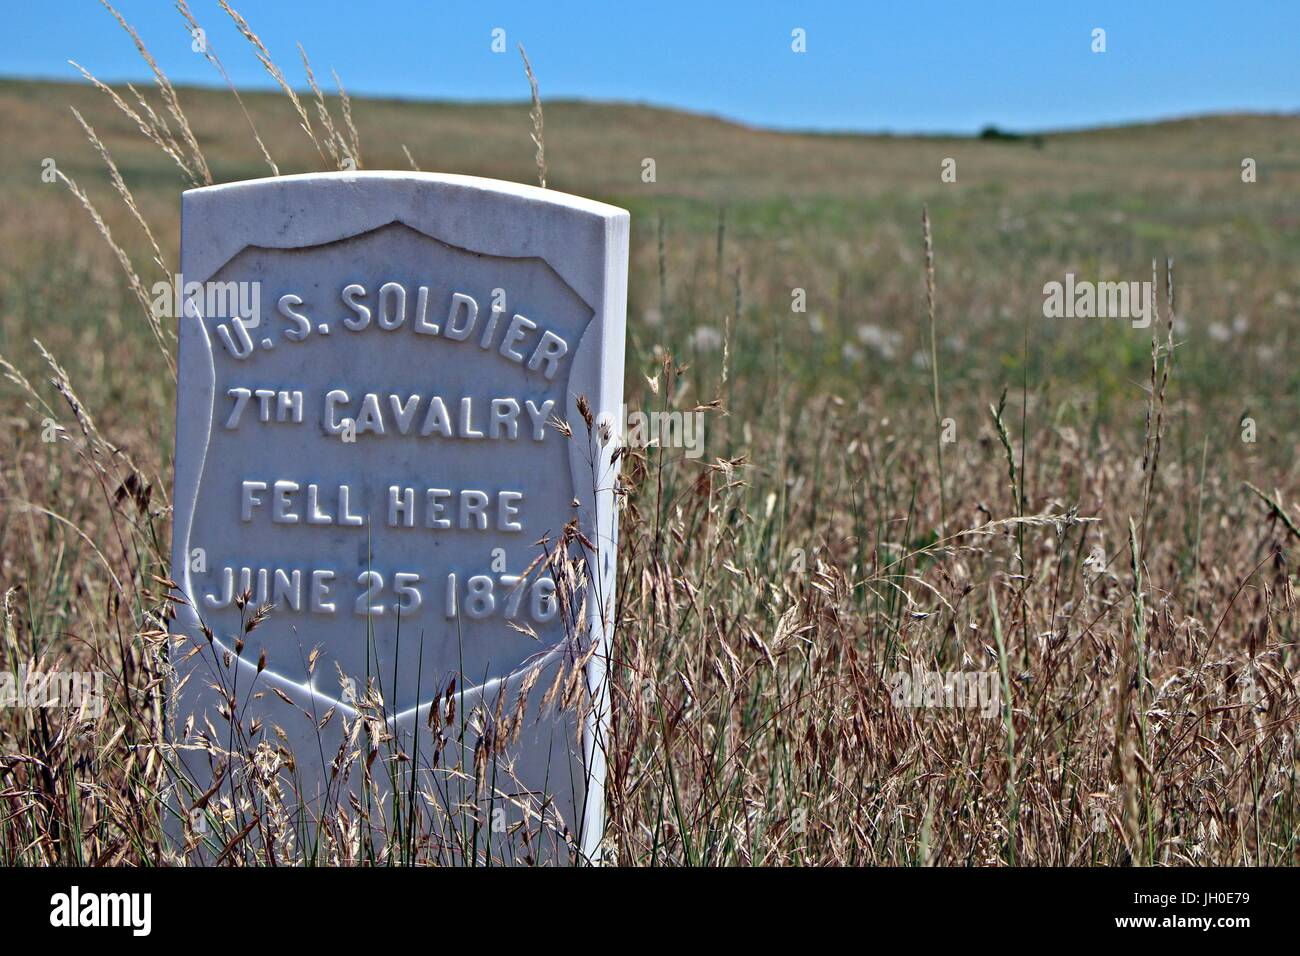 US Army 7th Cavalry burial site Stock Photo